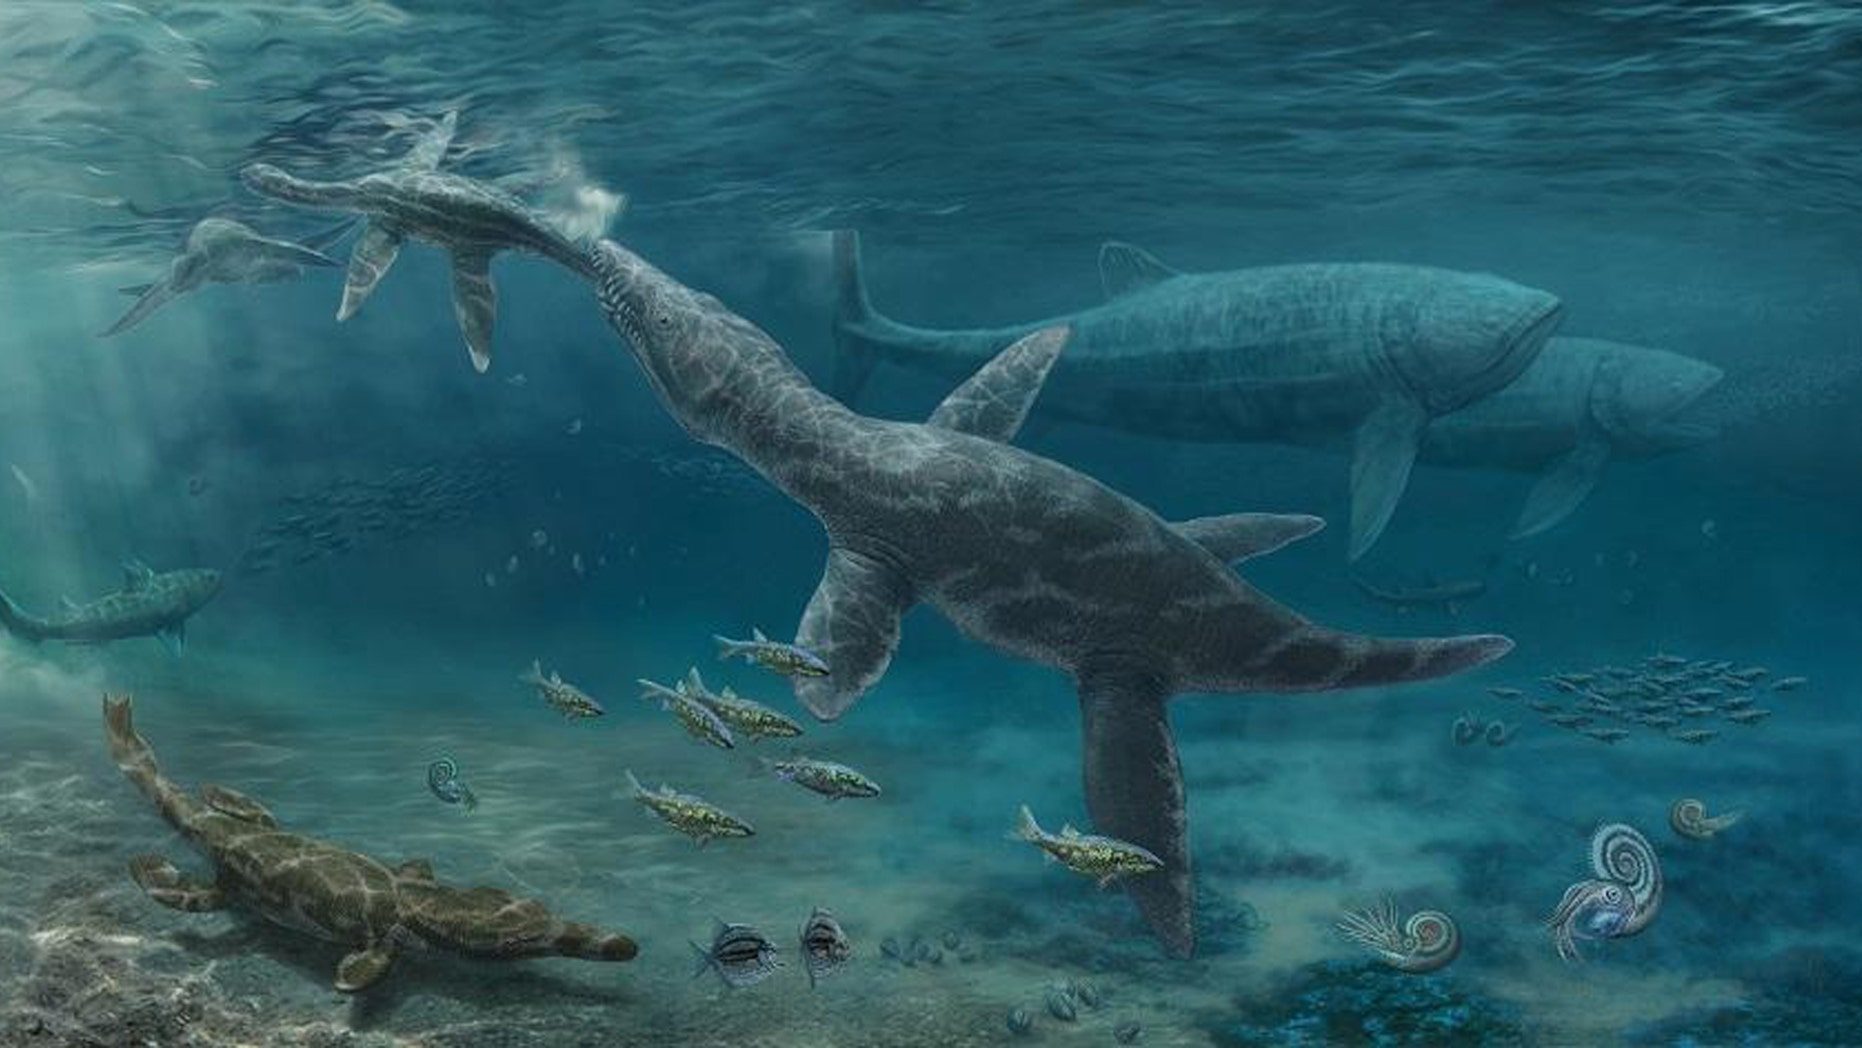 Artist's impression of Jurassic seas (Credit: Nikolay Zverkov)